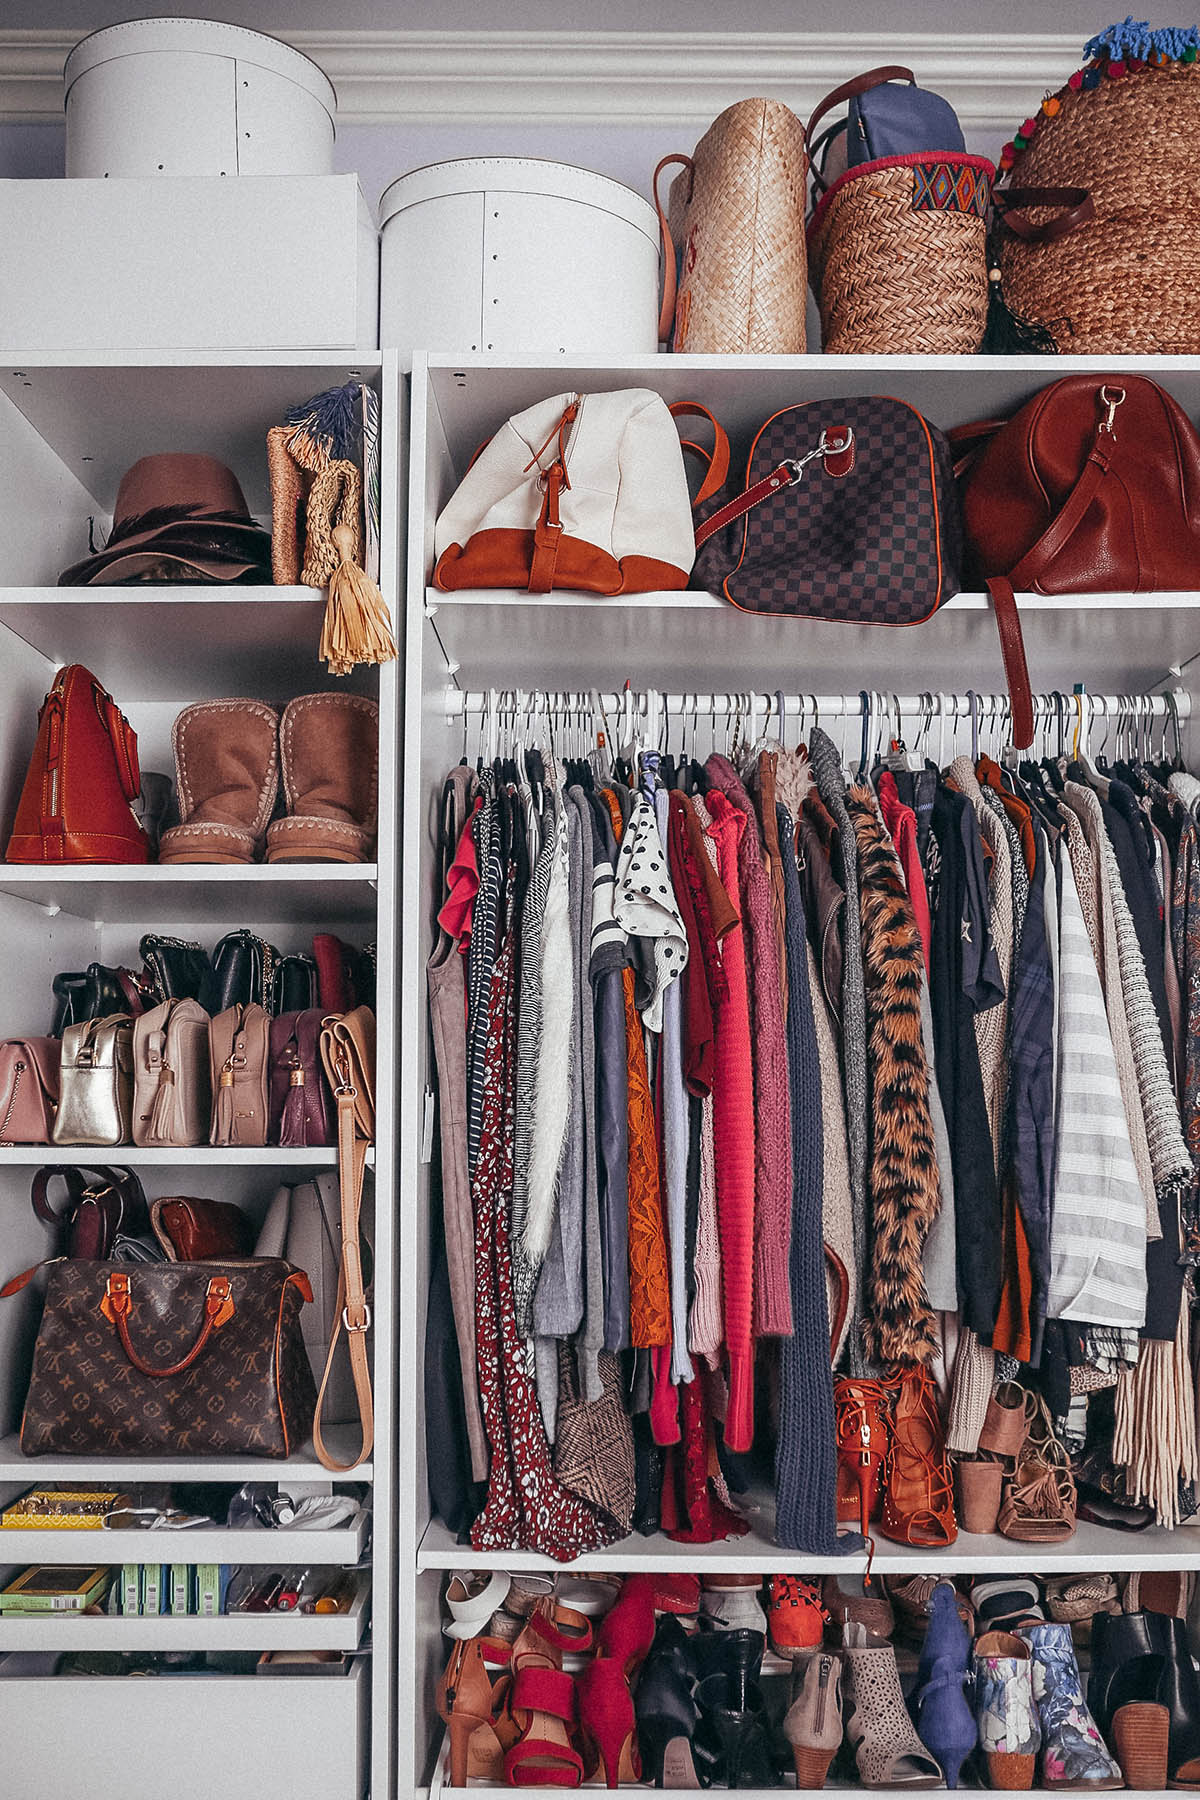 How To Clean Your Closet how to clean out your closet | closet organization tips